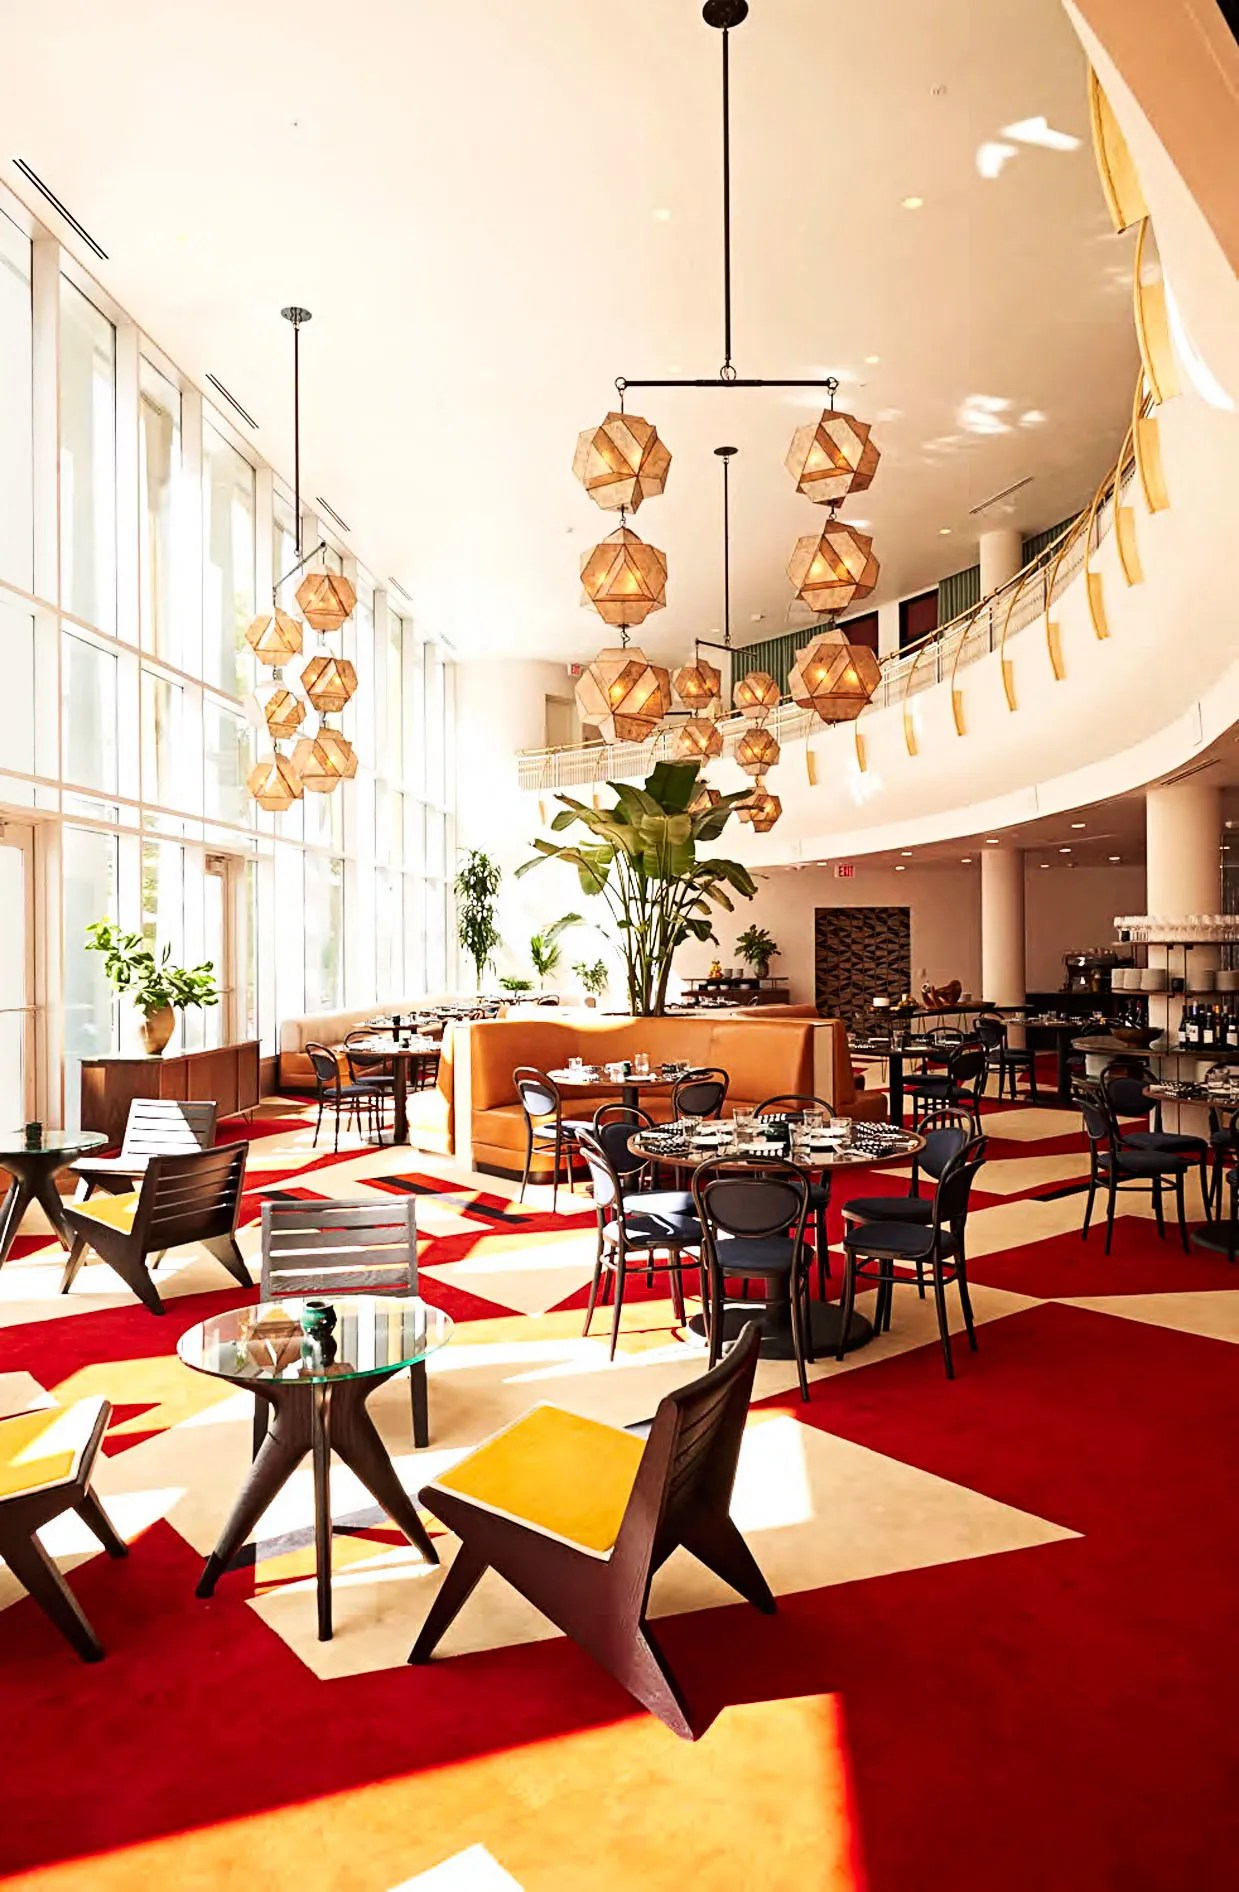 Renovated Midcentury Modern Hotels Photos Architectural